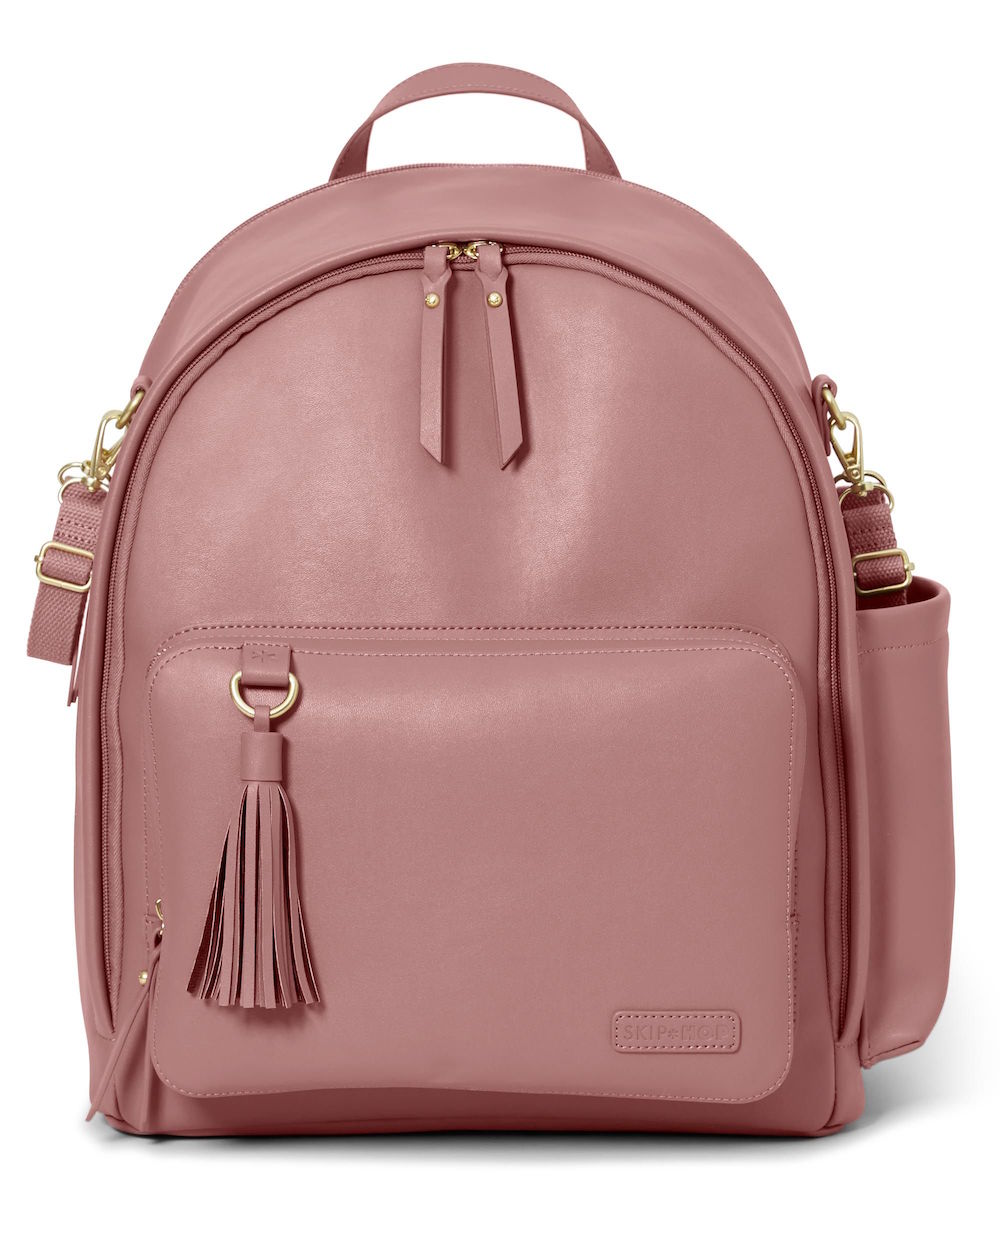 Skip Hop Greenwich Backpack £99